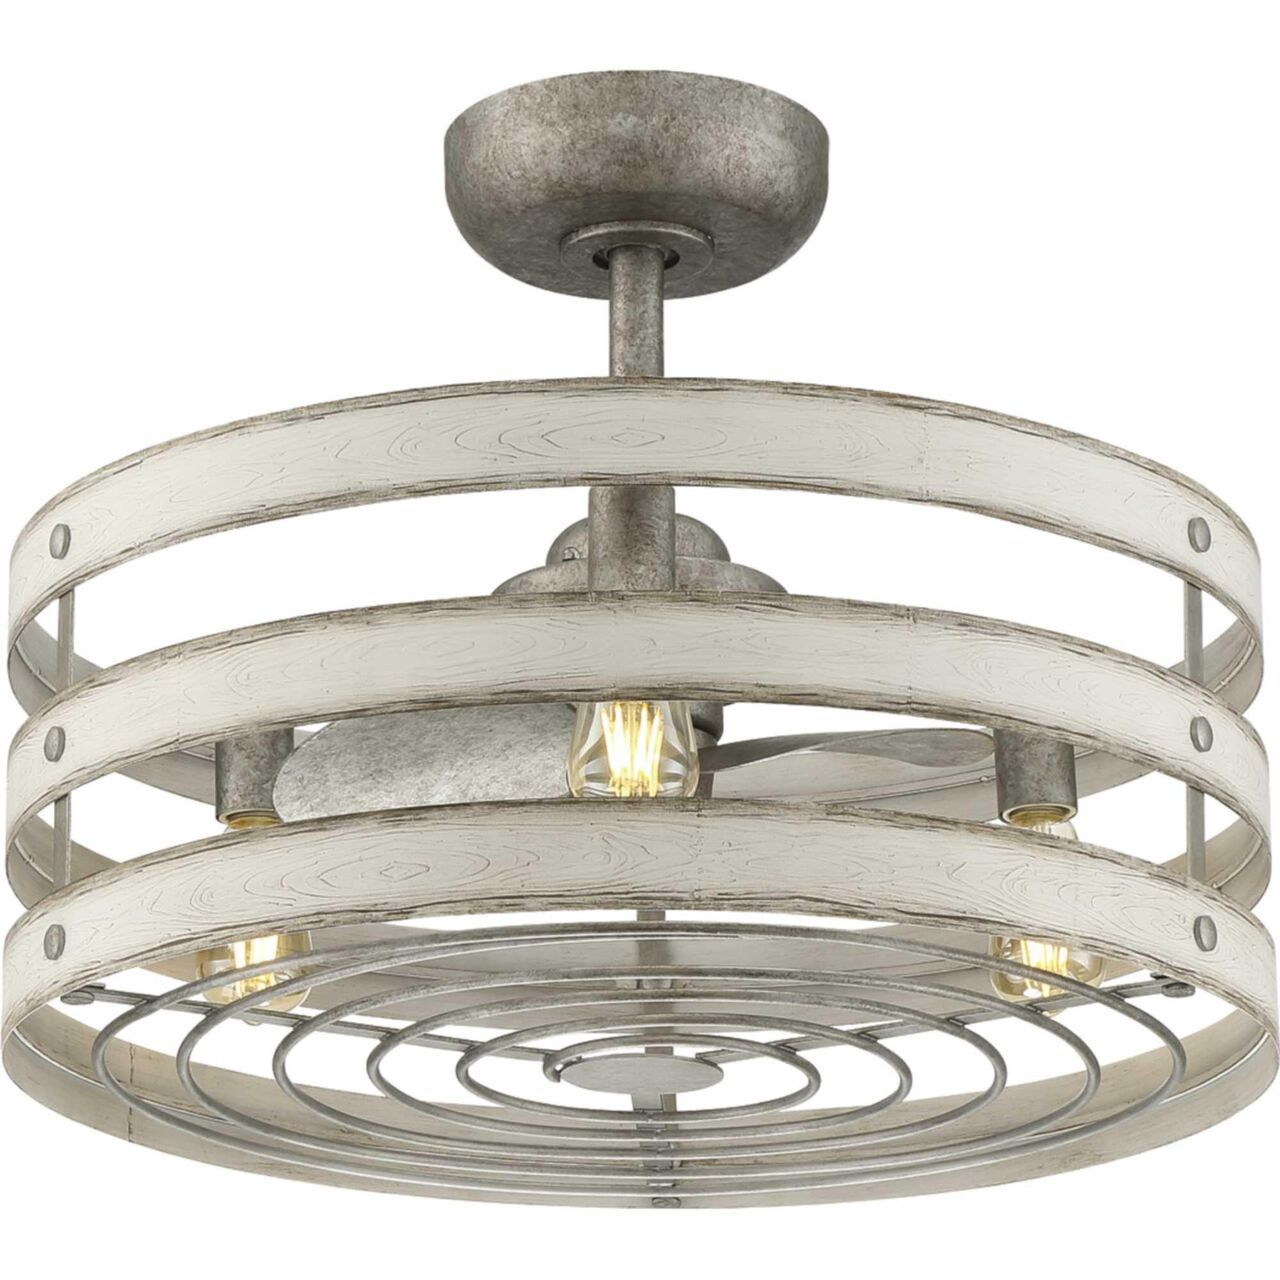 Shown in Galvanized Finish finish Ceiling fan with light